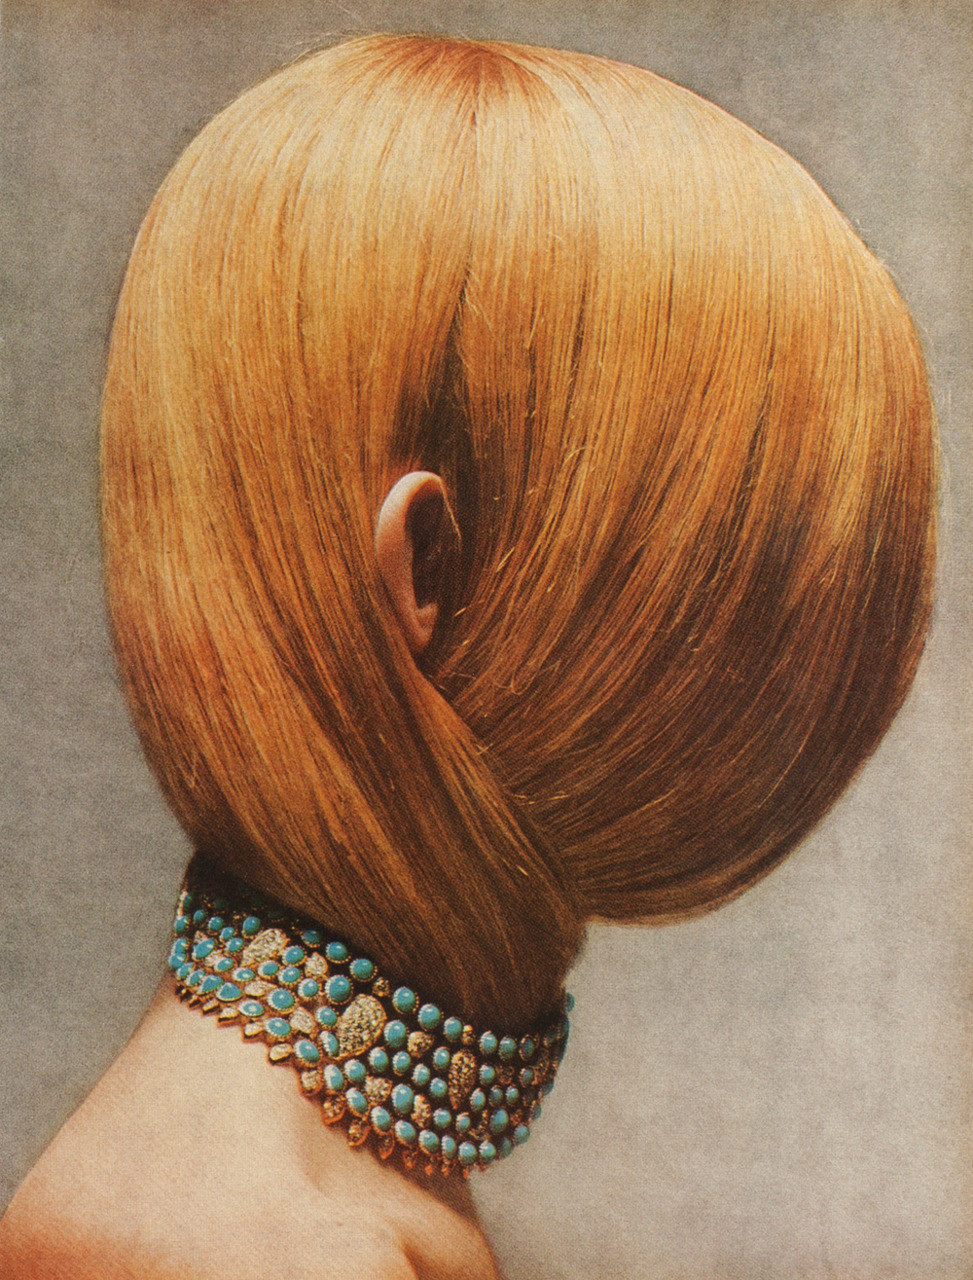 garcode:  Jewellery shoot by Diana Vreeland for Vogue US 1968